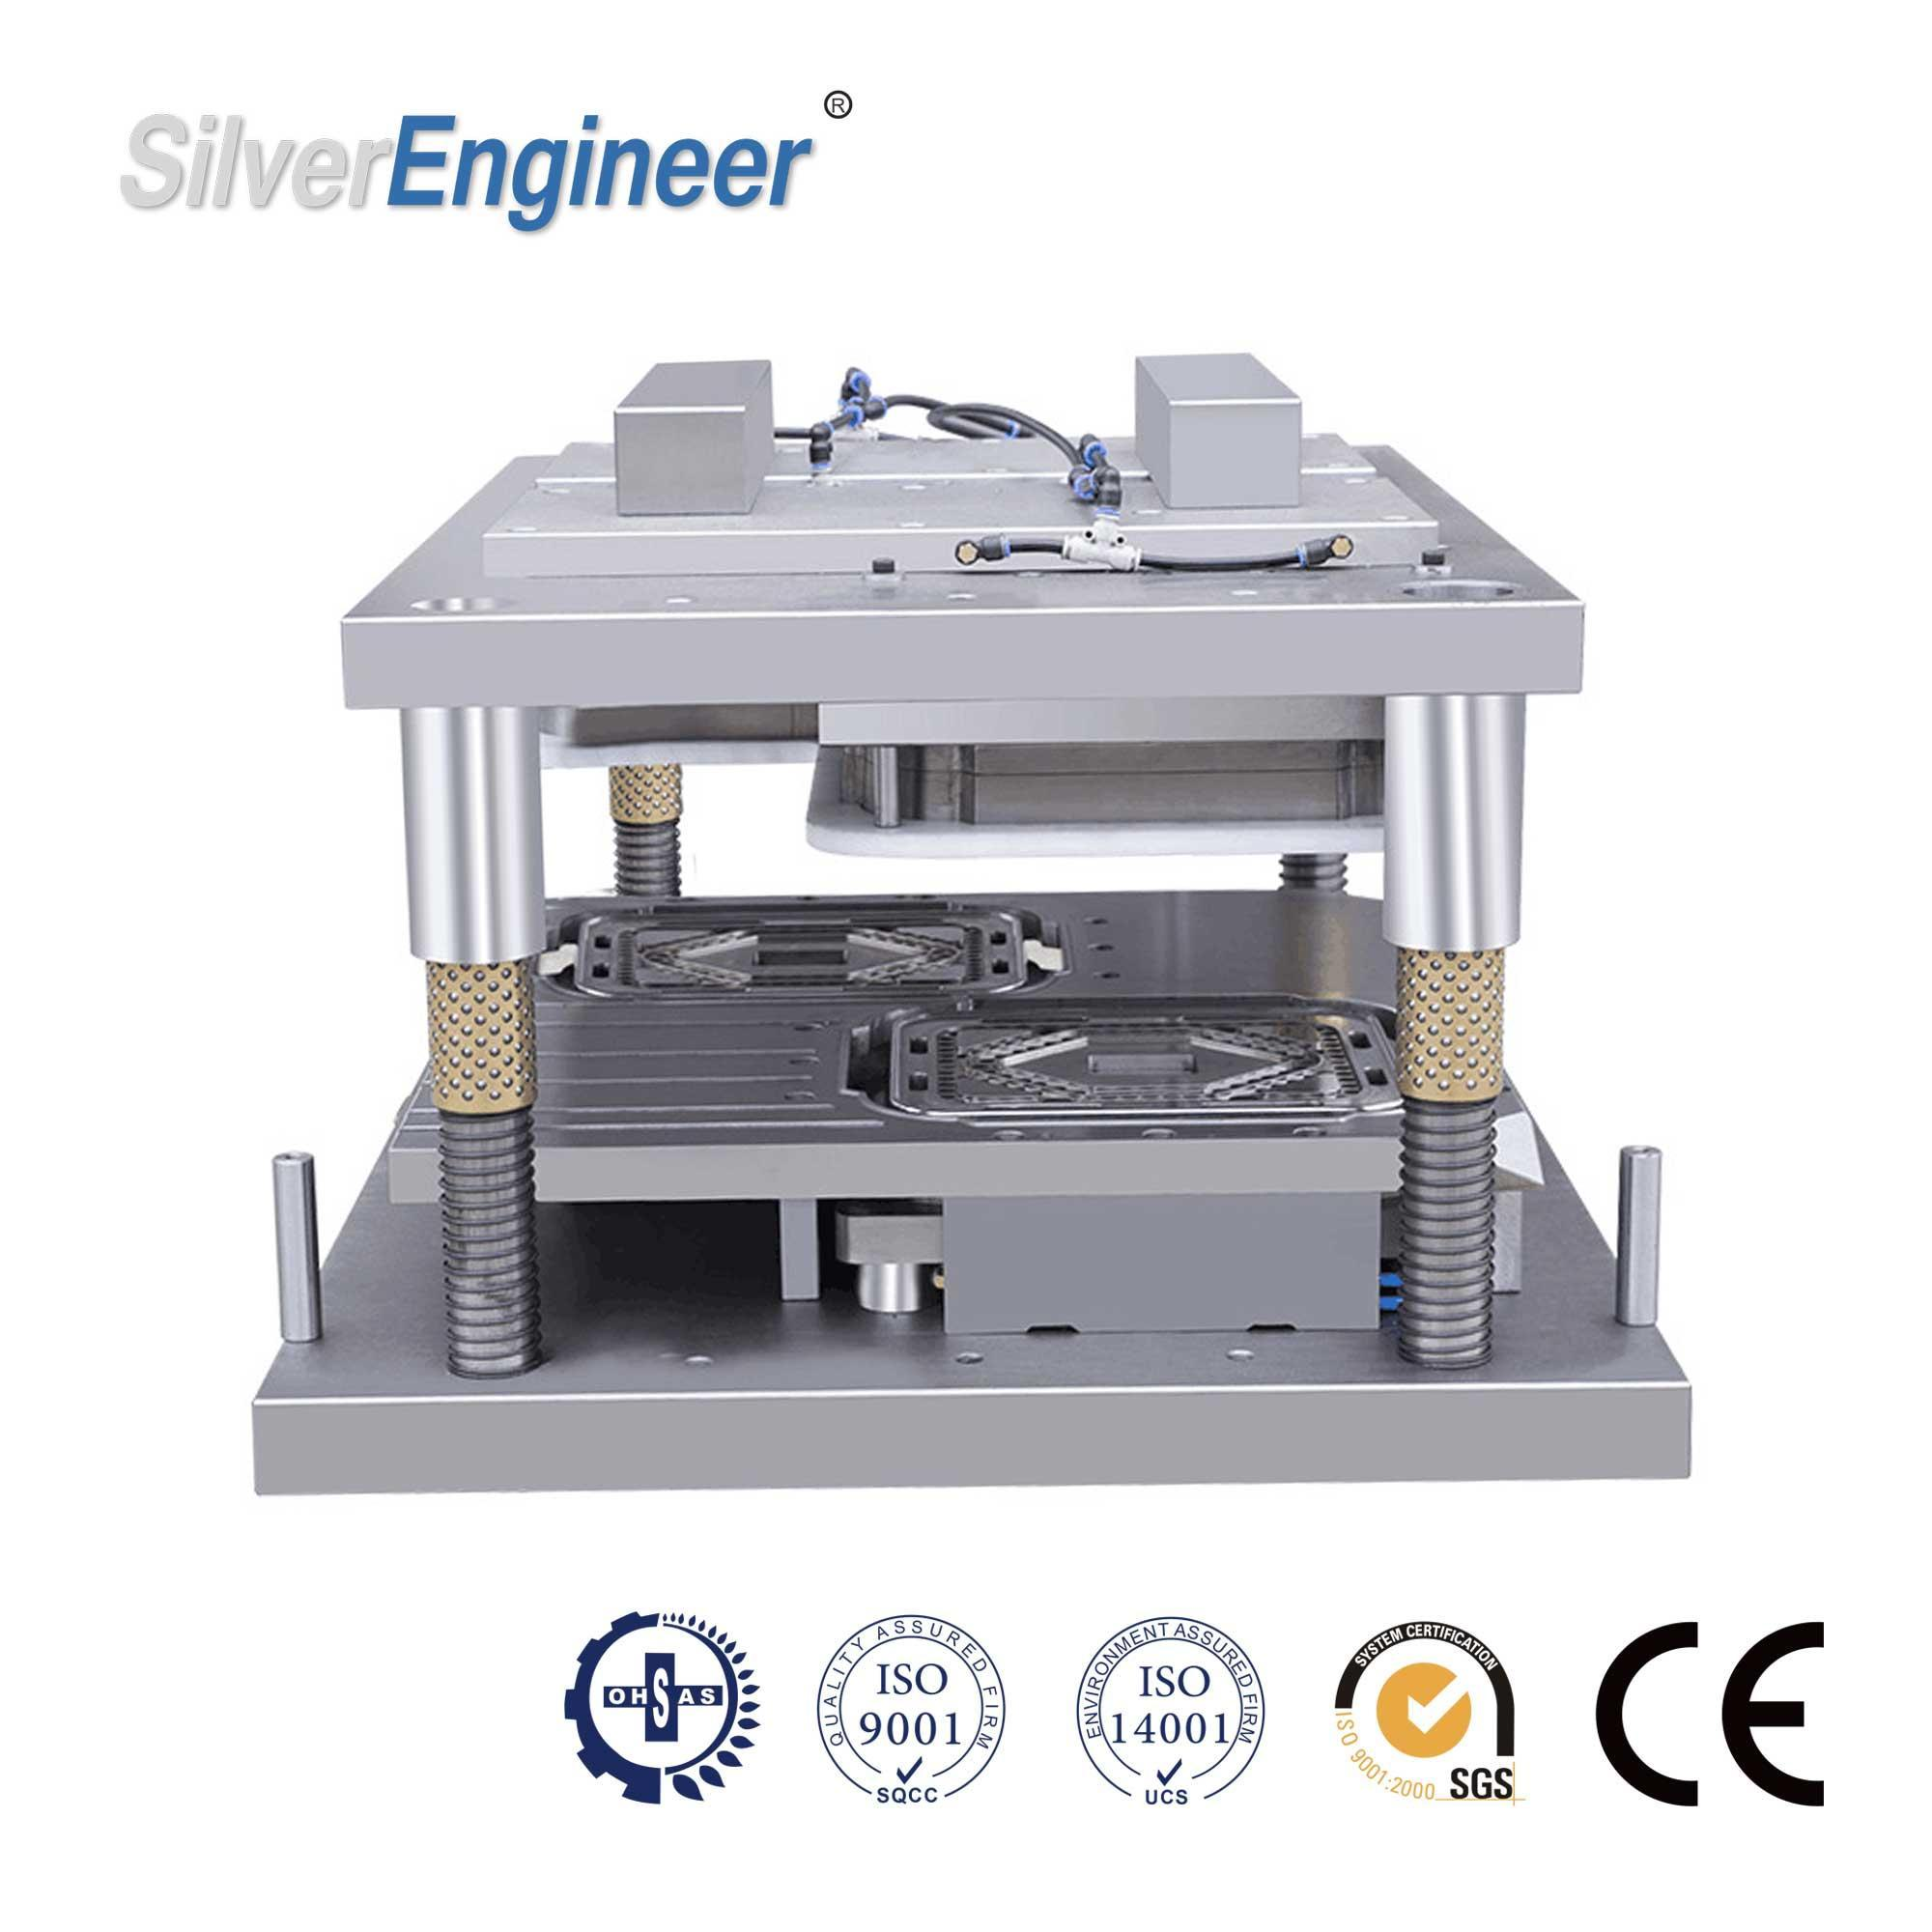 Aluminum Foil Container Mould for Disposable Food Container From Silverengineer 20